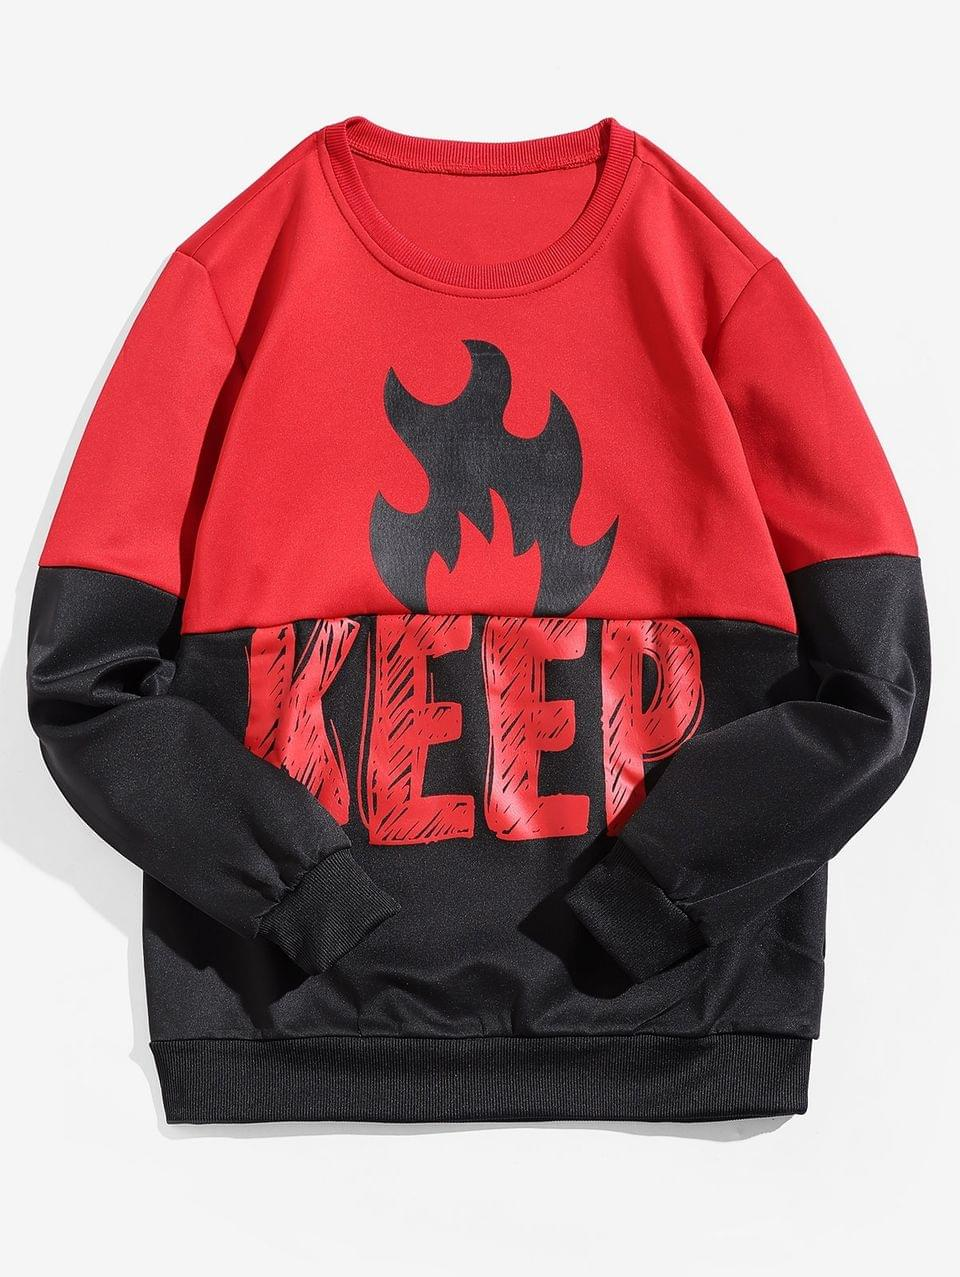 Men's Keep Letter Flame Print Colorblock Spliced Pullover Sweatshirt - Red S